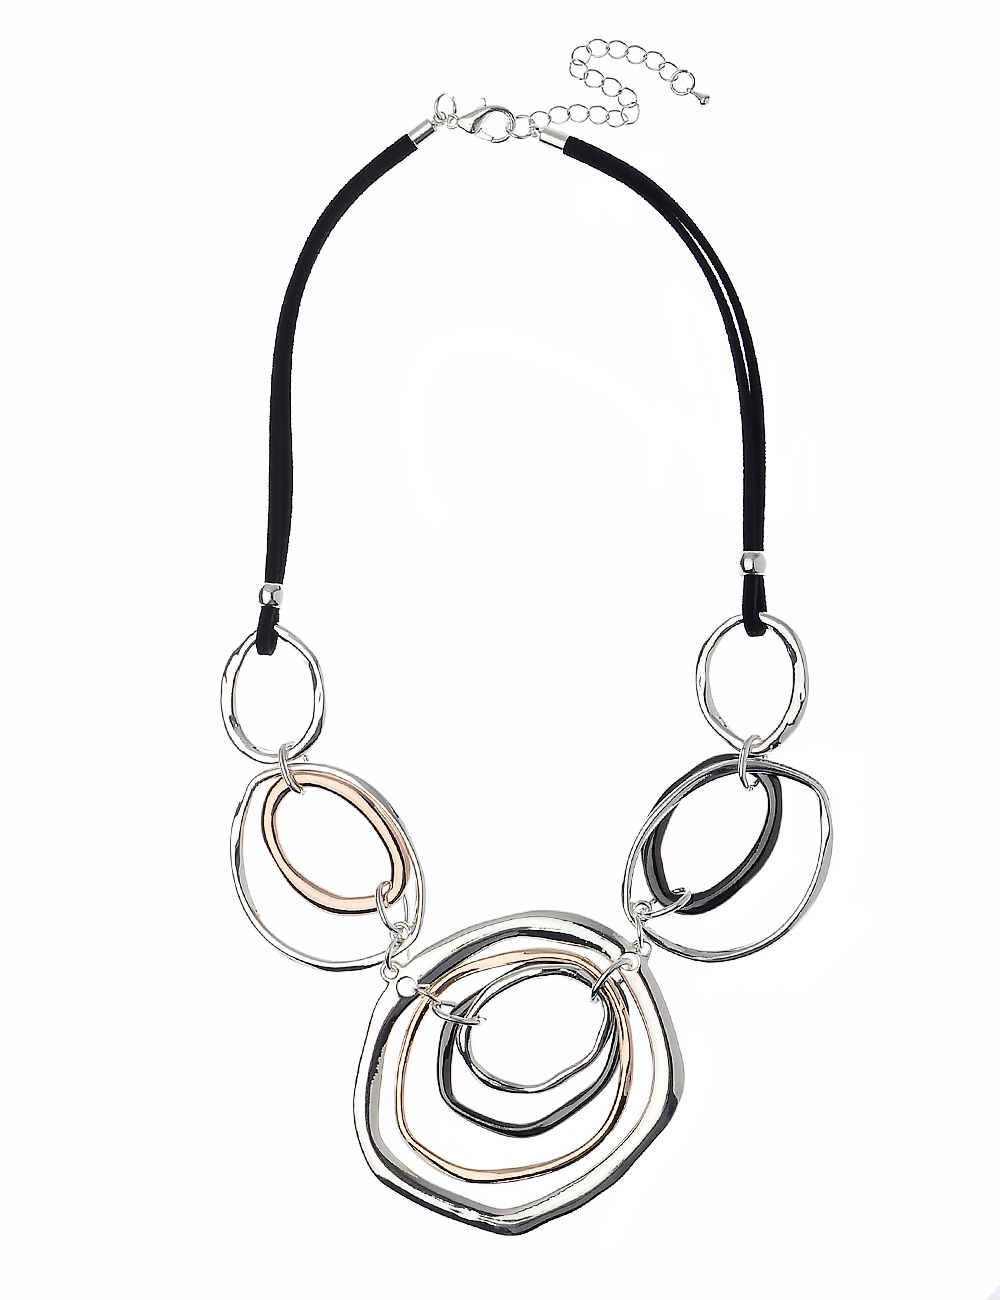 Black Suede Necklsce with Irregular Concentric Rounded Shapes In 3 Meatl Tone